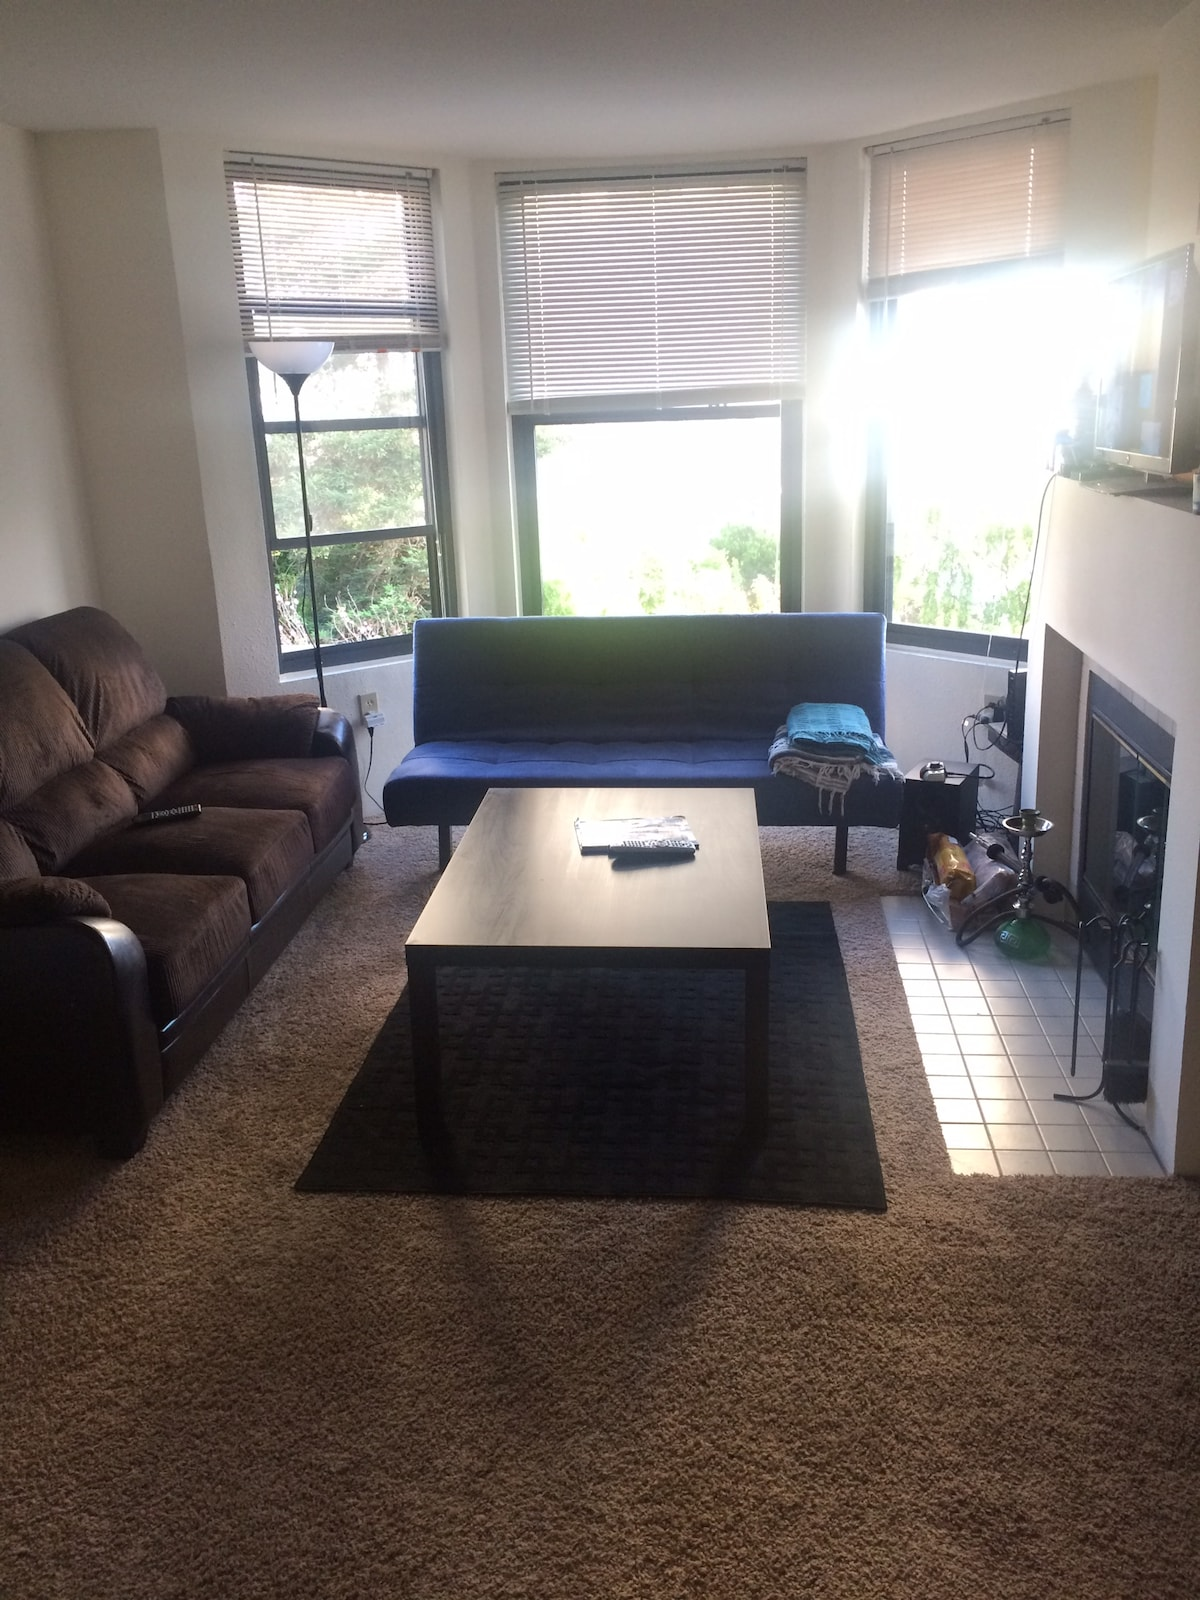 2 bed/2 bath in Heart of SF w/ View